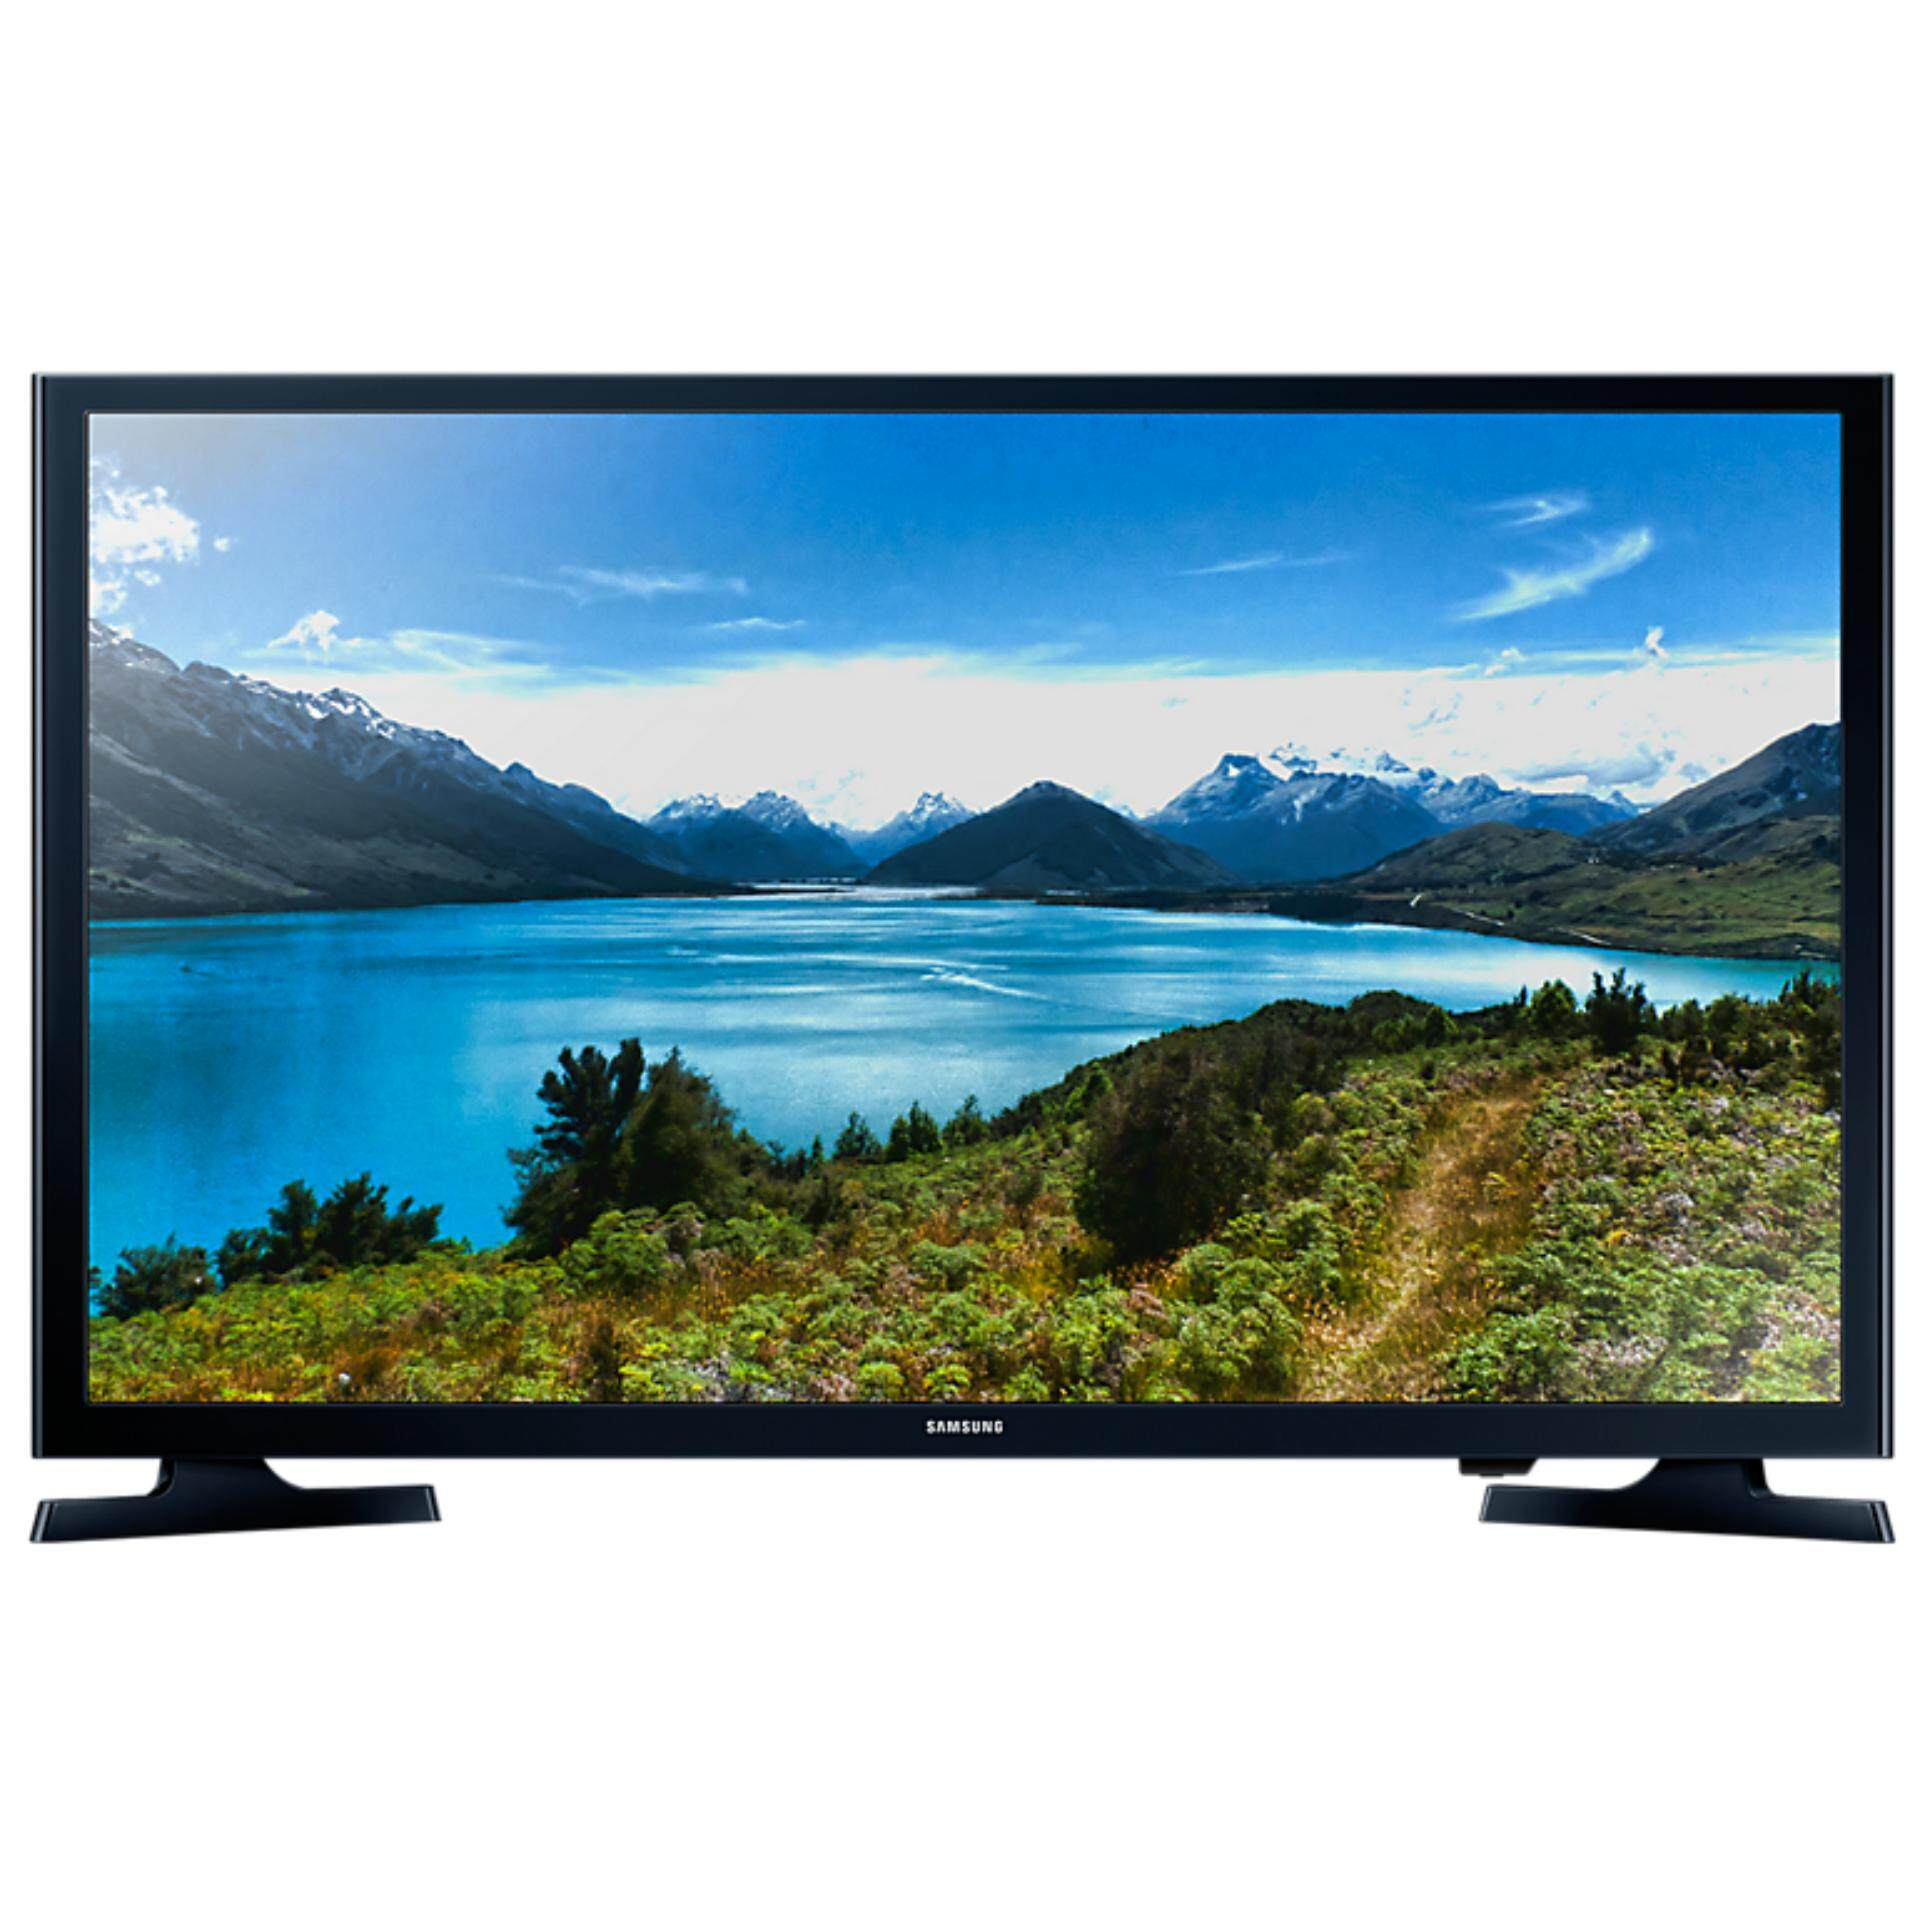 Samsung  Led Tv Wdvb T Digital Tuner Uajak